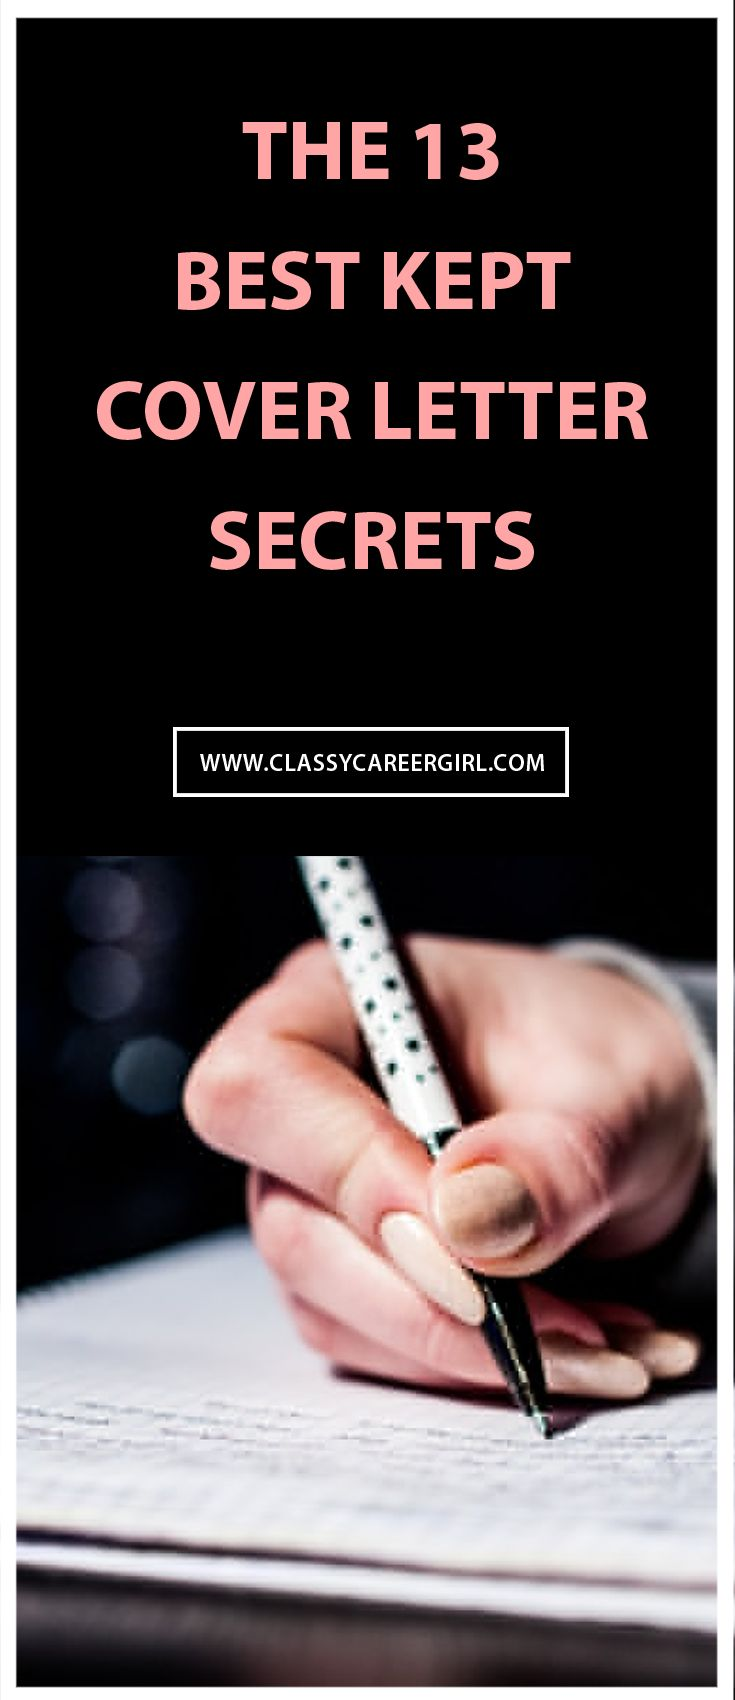 Think no one reads a cover letter? WRONG!  The small things really do make the difference. Some hiring managers only look at a cover letter because it should give them everything they really want to know about you.   http://www.classycareergirl.com/2013/03/the-13-best-kept-cover-letter-secrets/